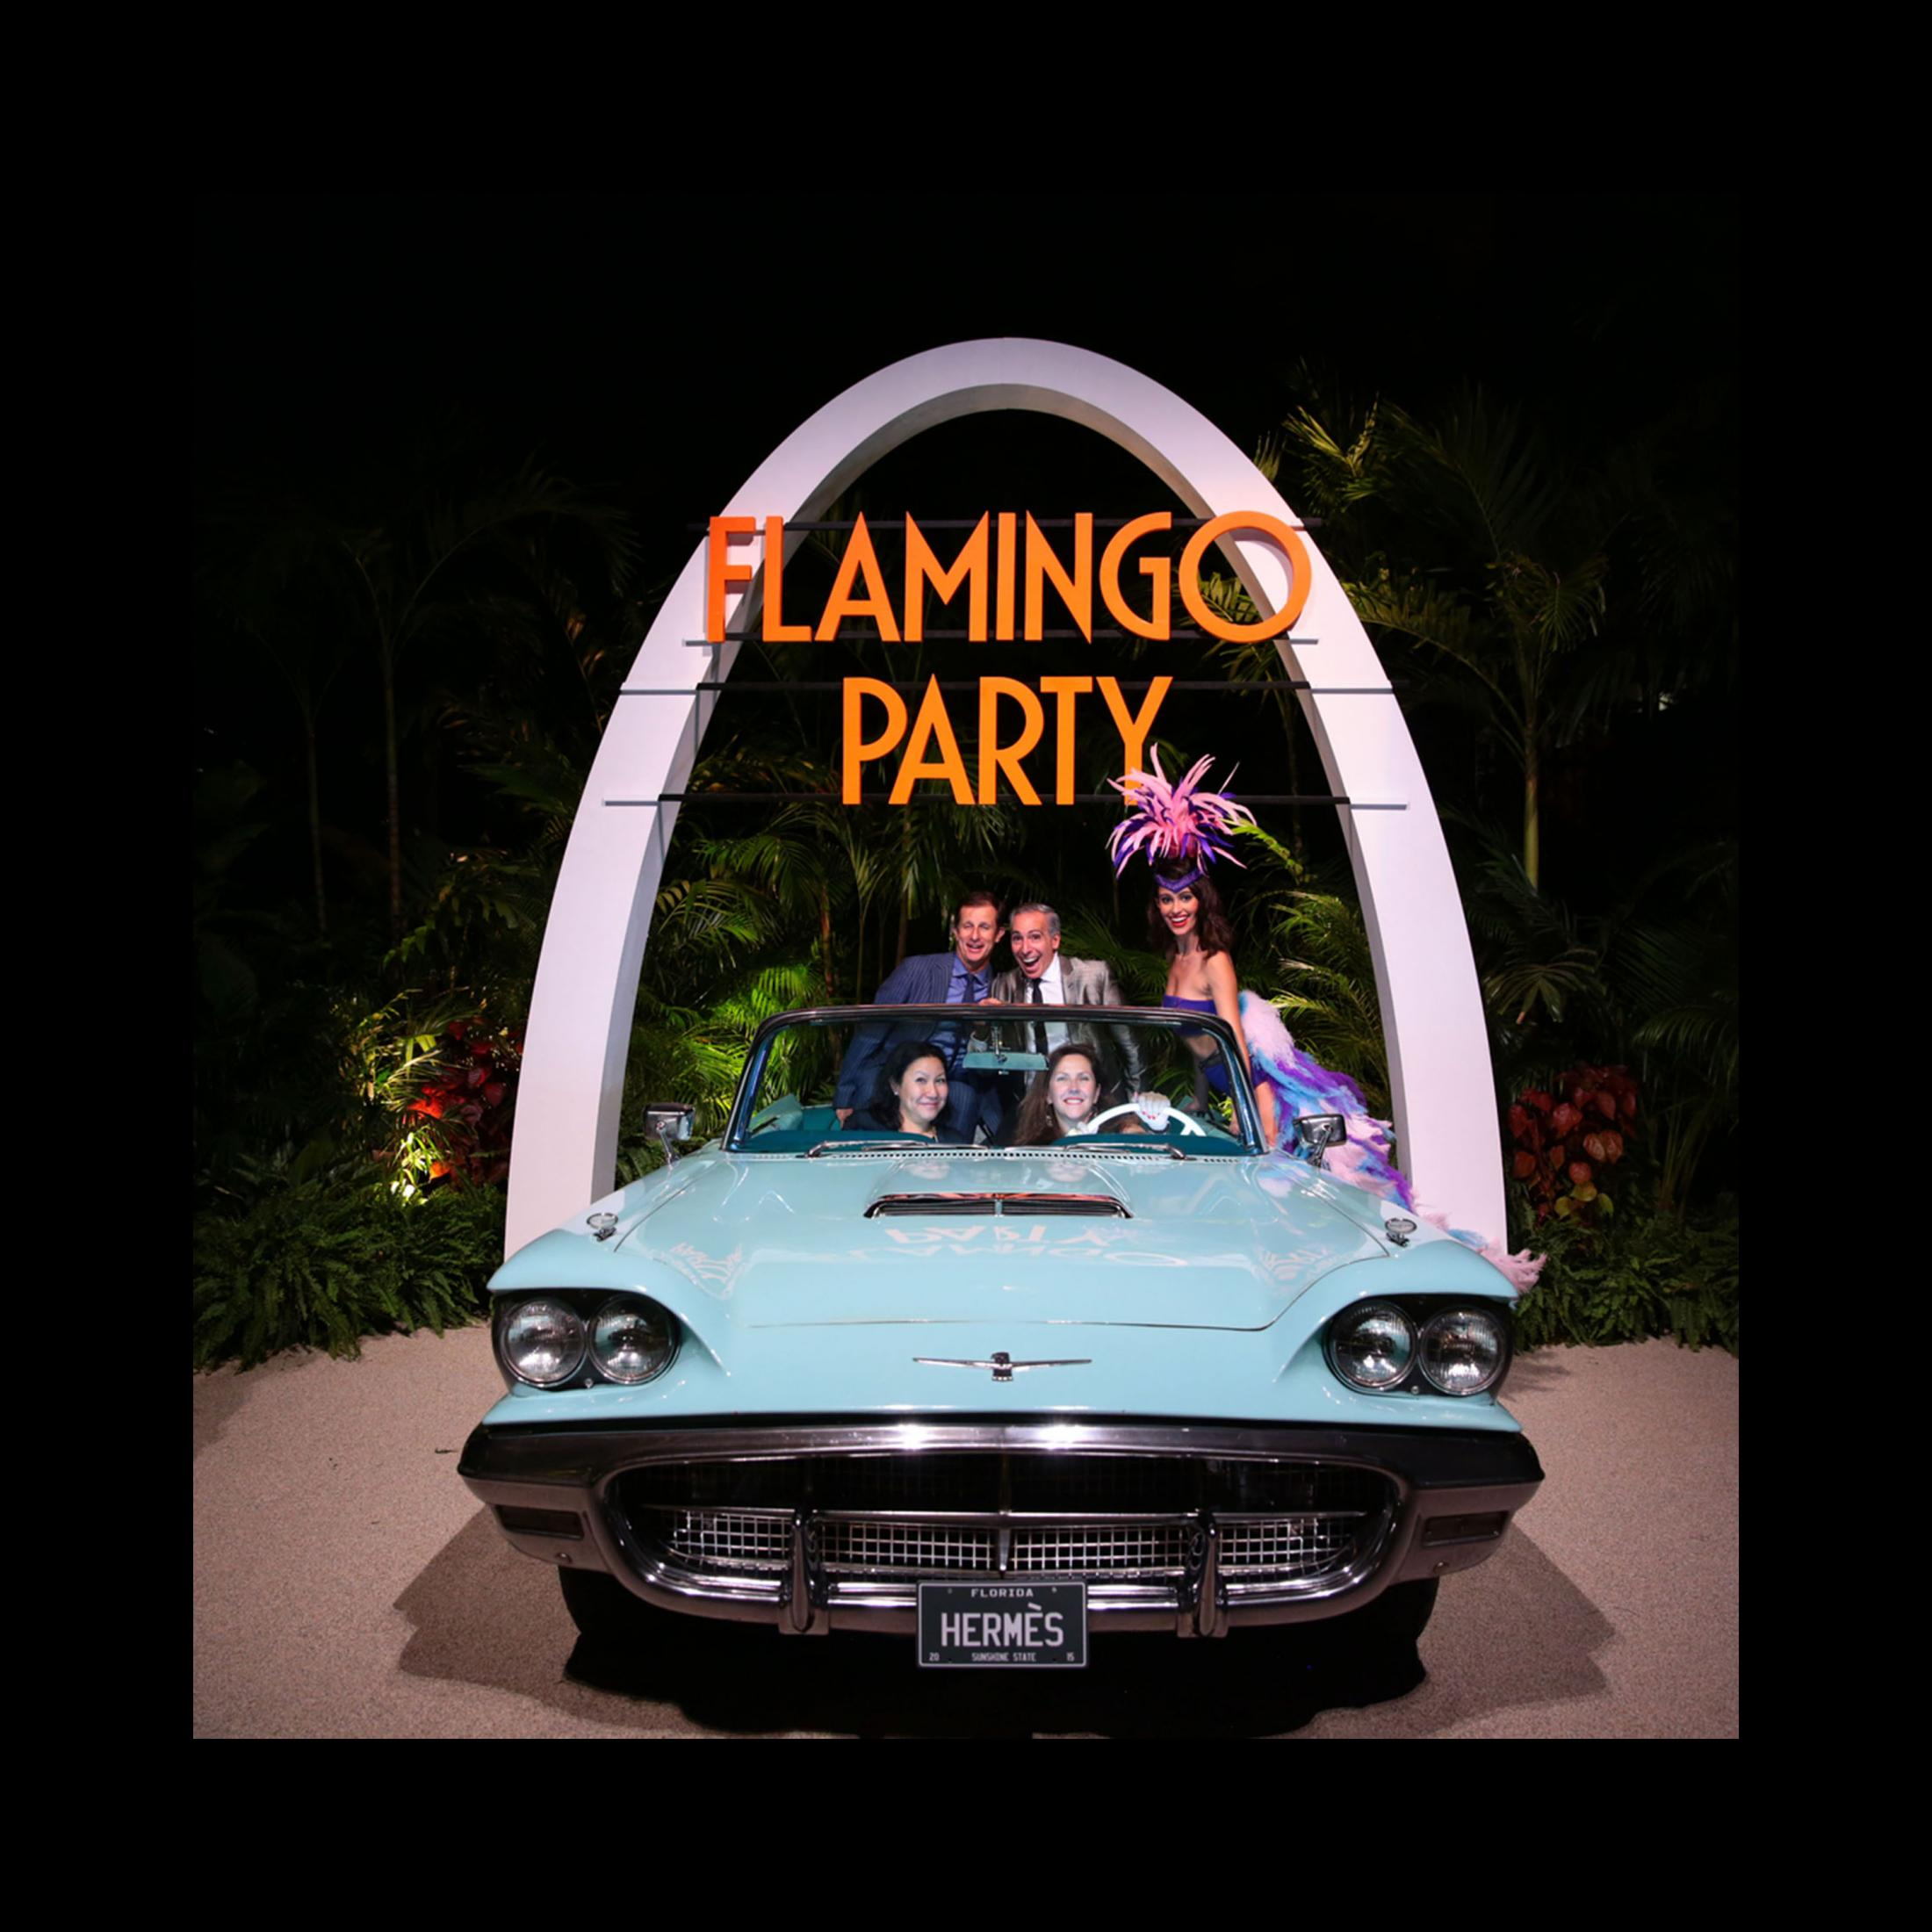 Image Media for Flamingo Party